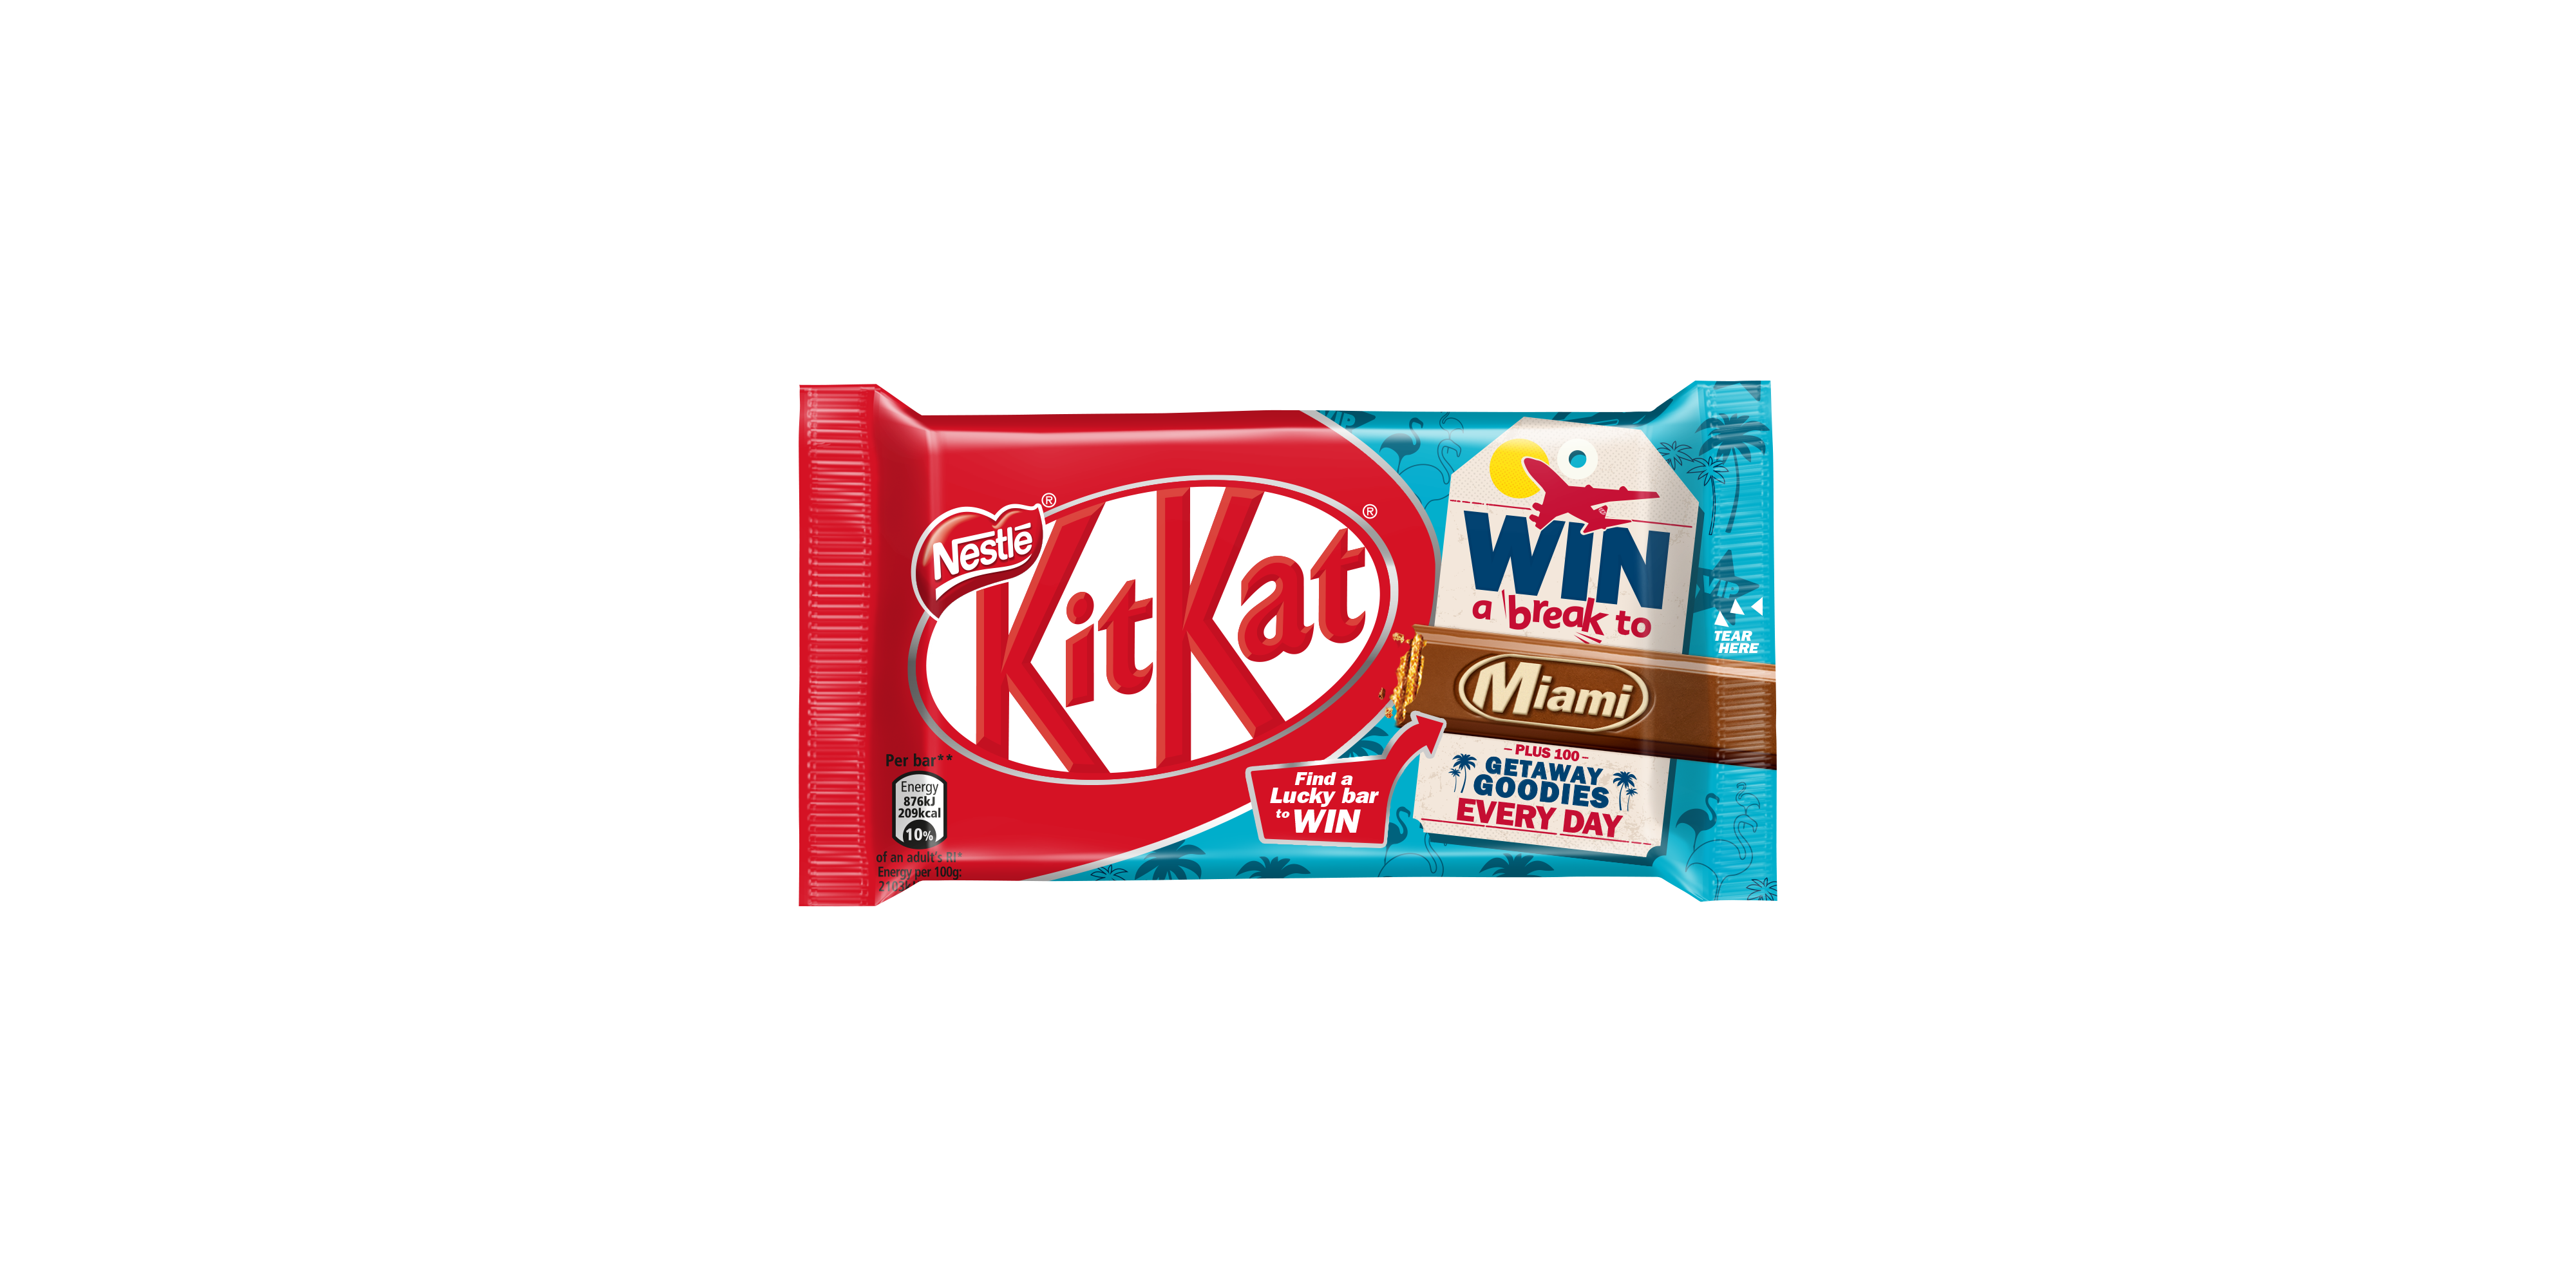 Sorry, not kit kat adult video